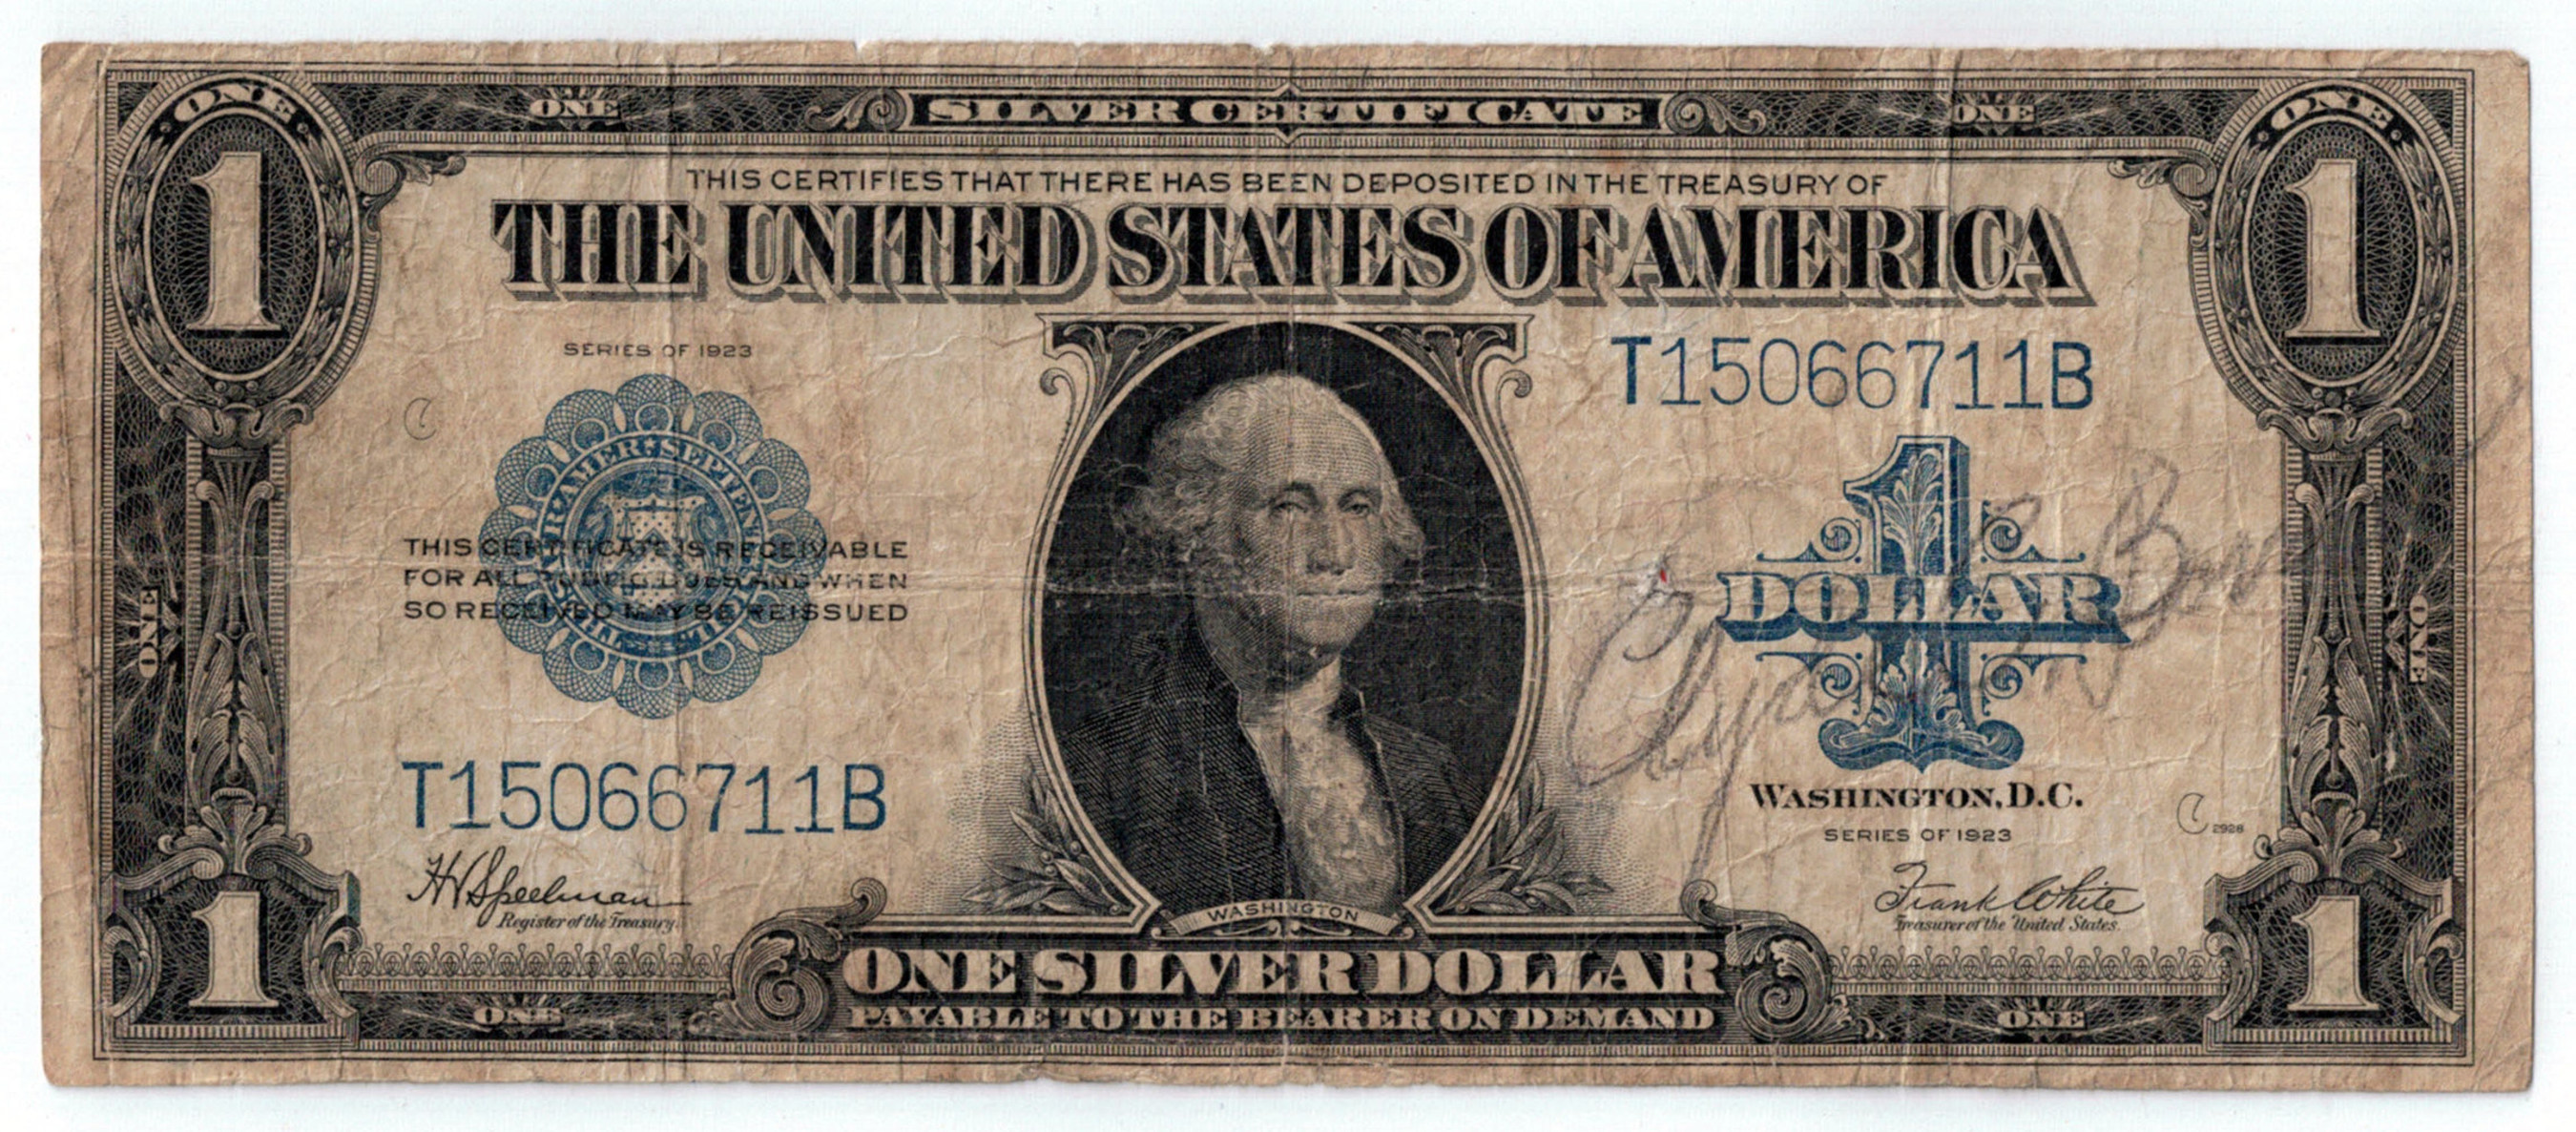 Dollar Bill Signed by the Outlaws Bonnie and Clyde Is Being Sold in an Internet-only Auction Ending March 1st